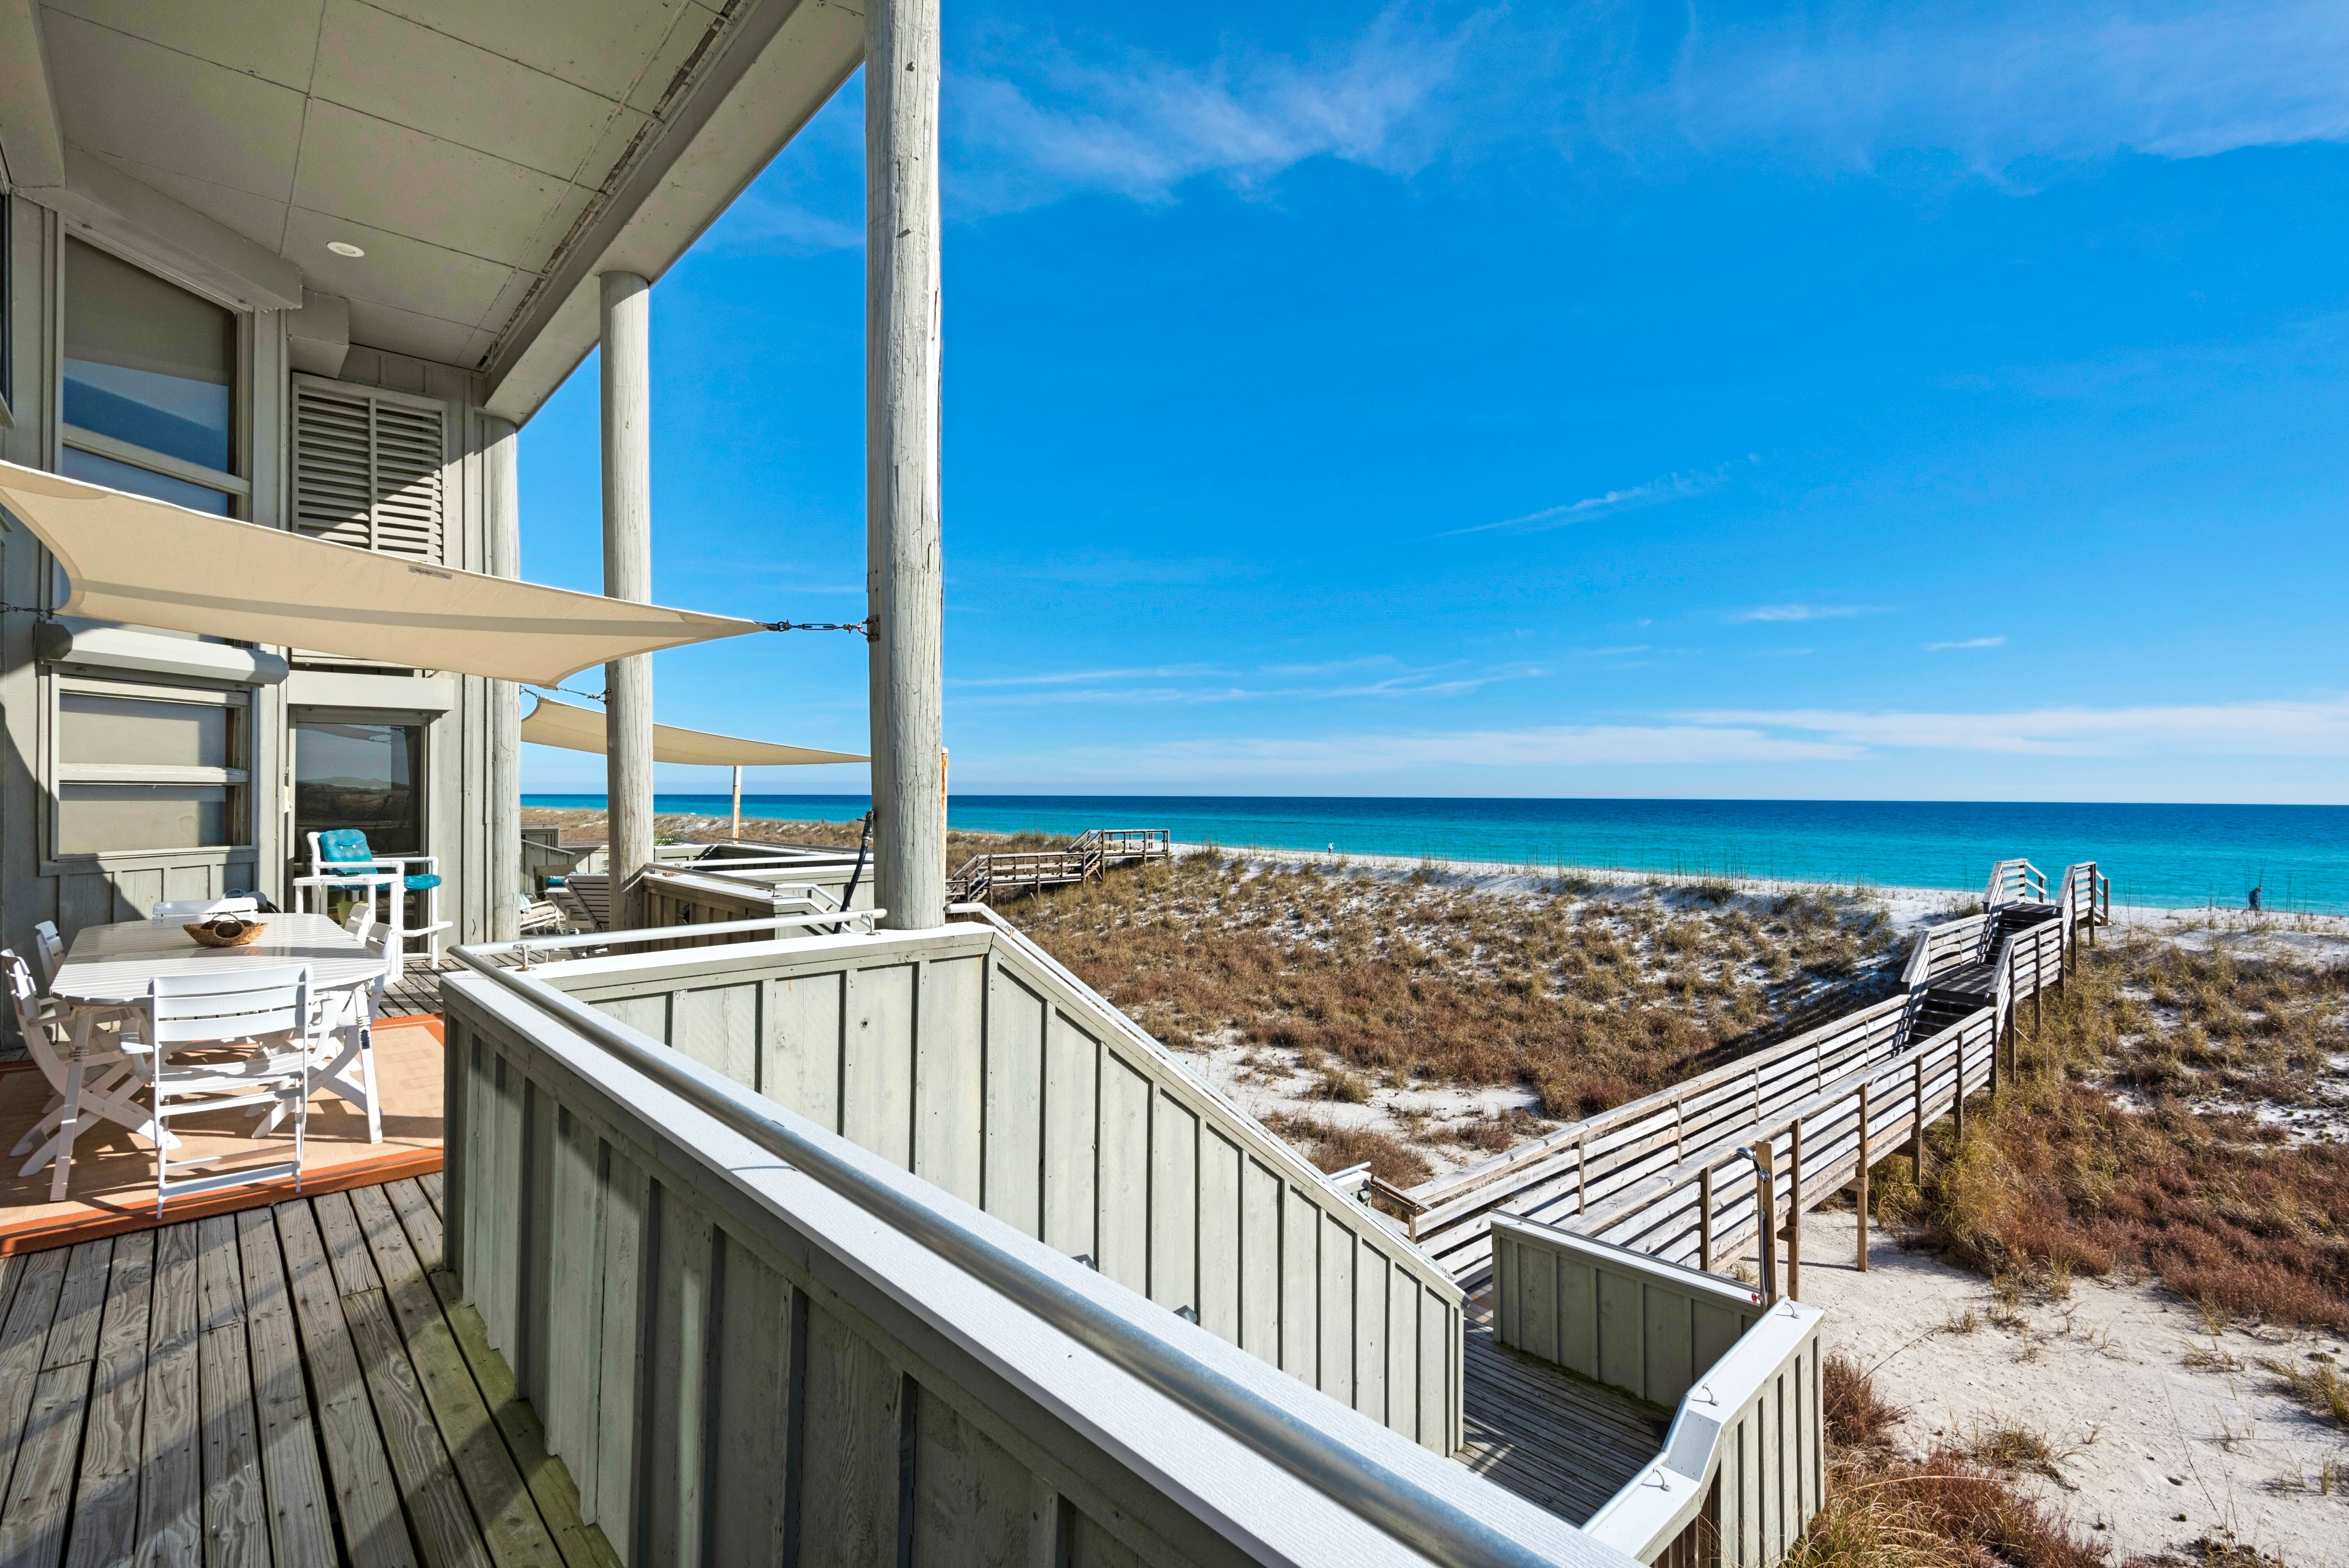 7527 Gulf Blvd - The Oyster House/Cottage rental in Navarre Beach House Rentals in Navarre Florida - #58